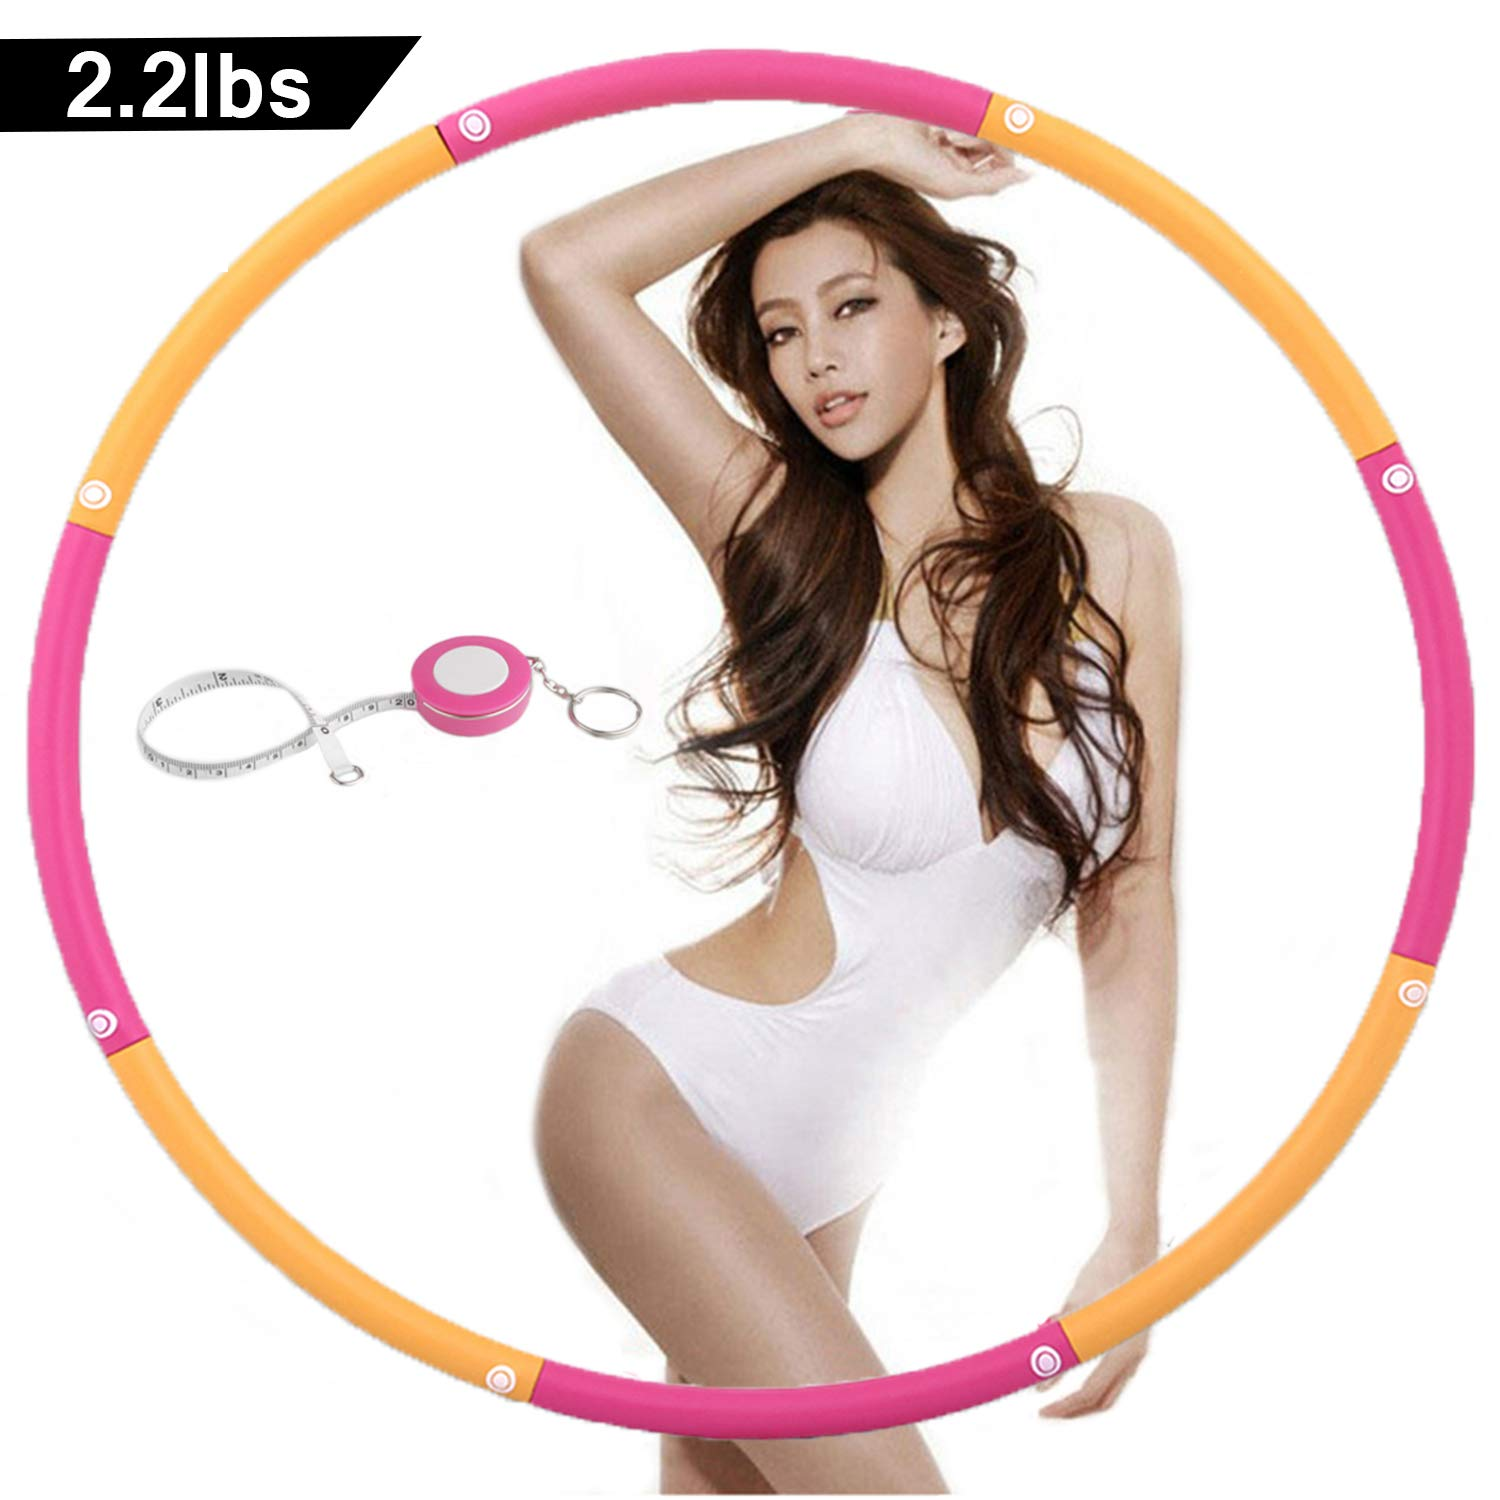 NEOWEEK | Upgraded | Weighted Hula Hoops for Exercise - 2.2lb, Professional Adult Hula Hoop for Weight Loss